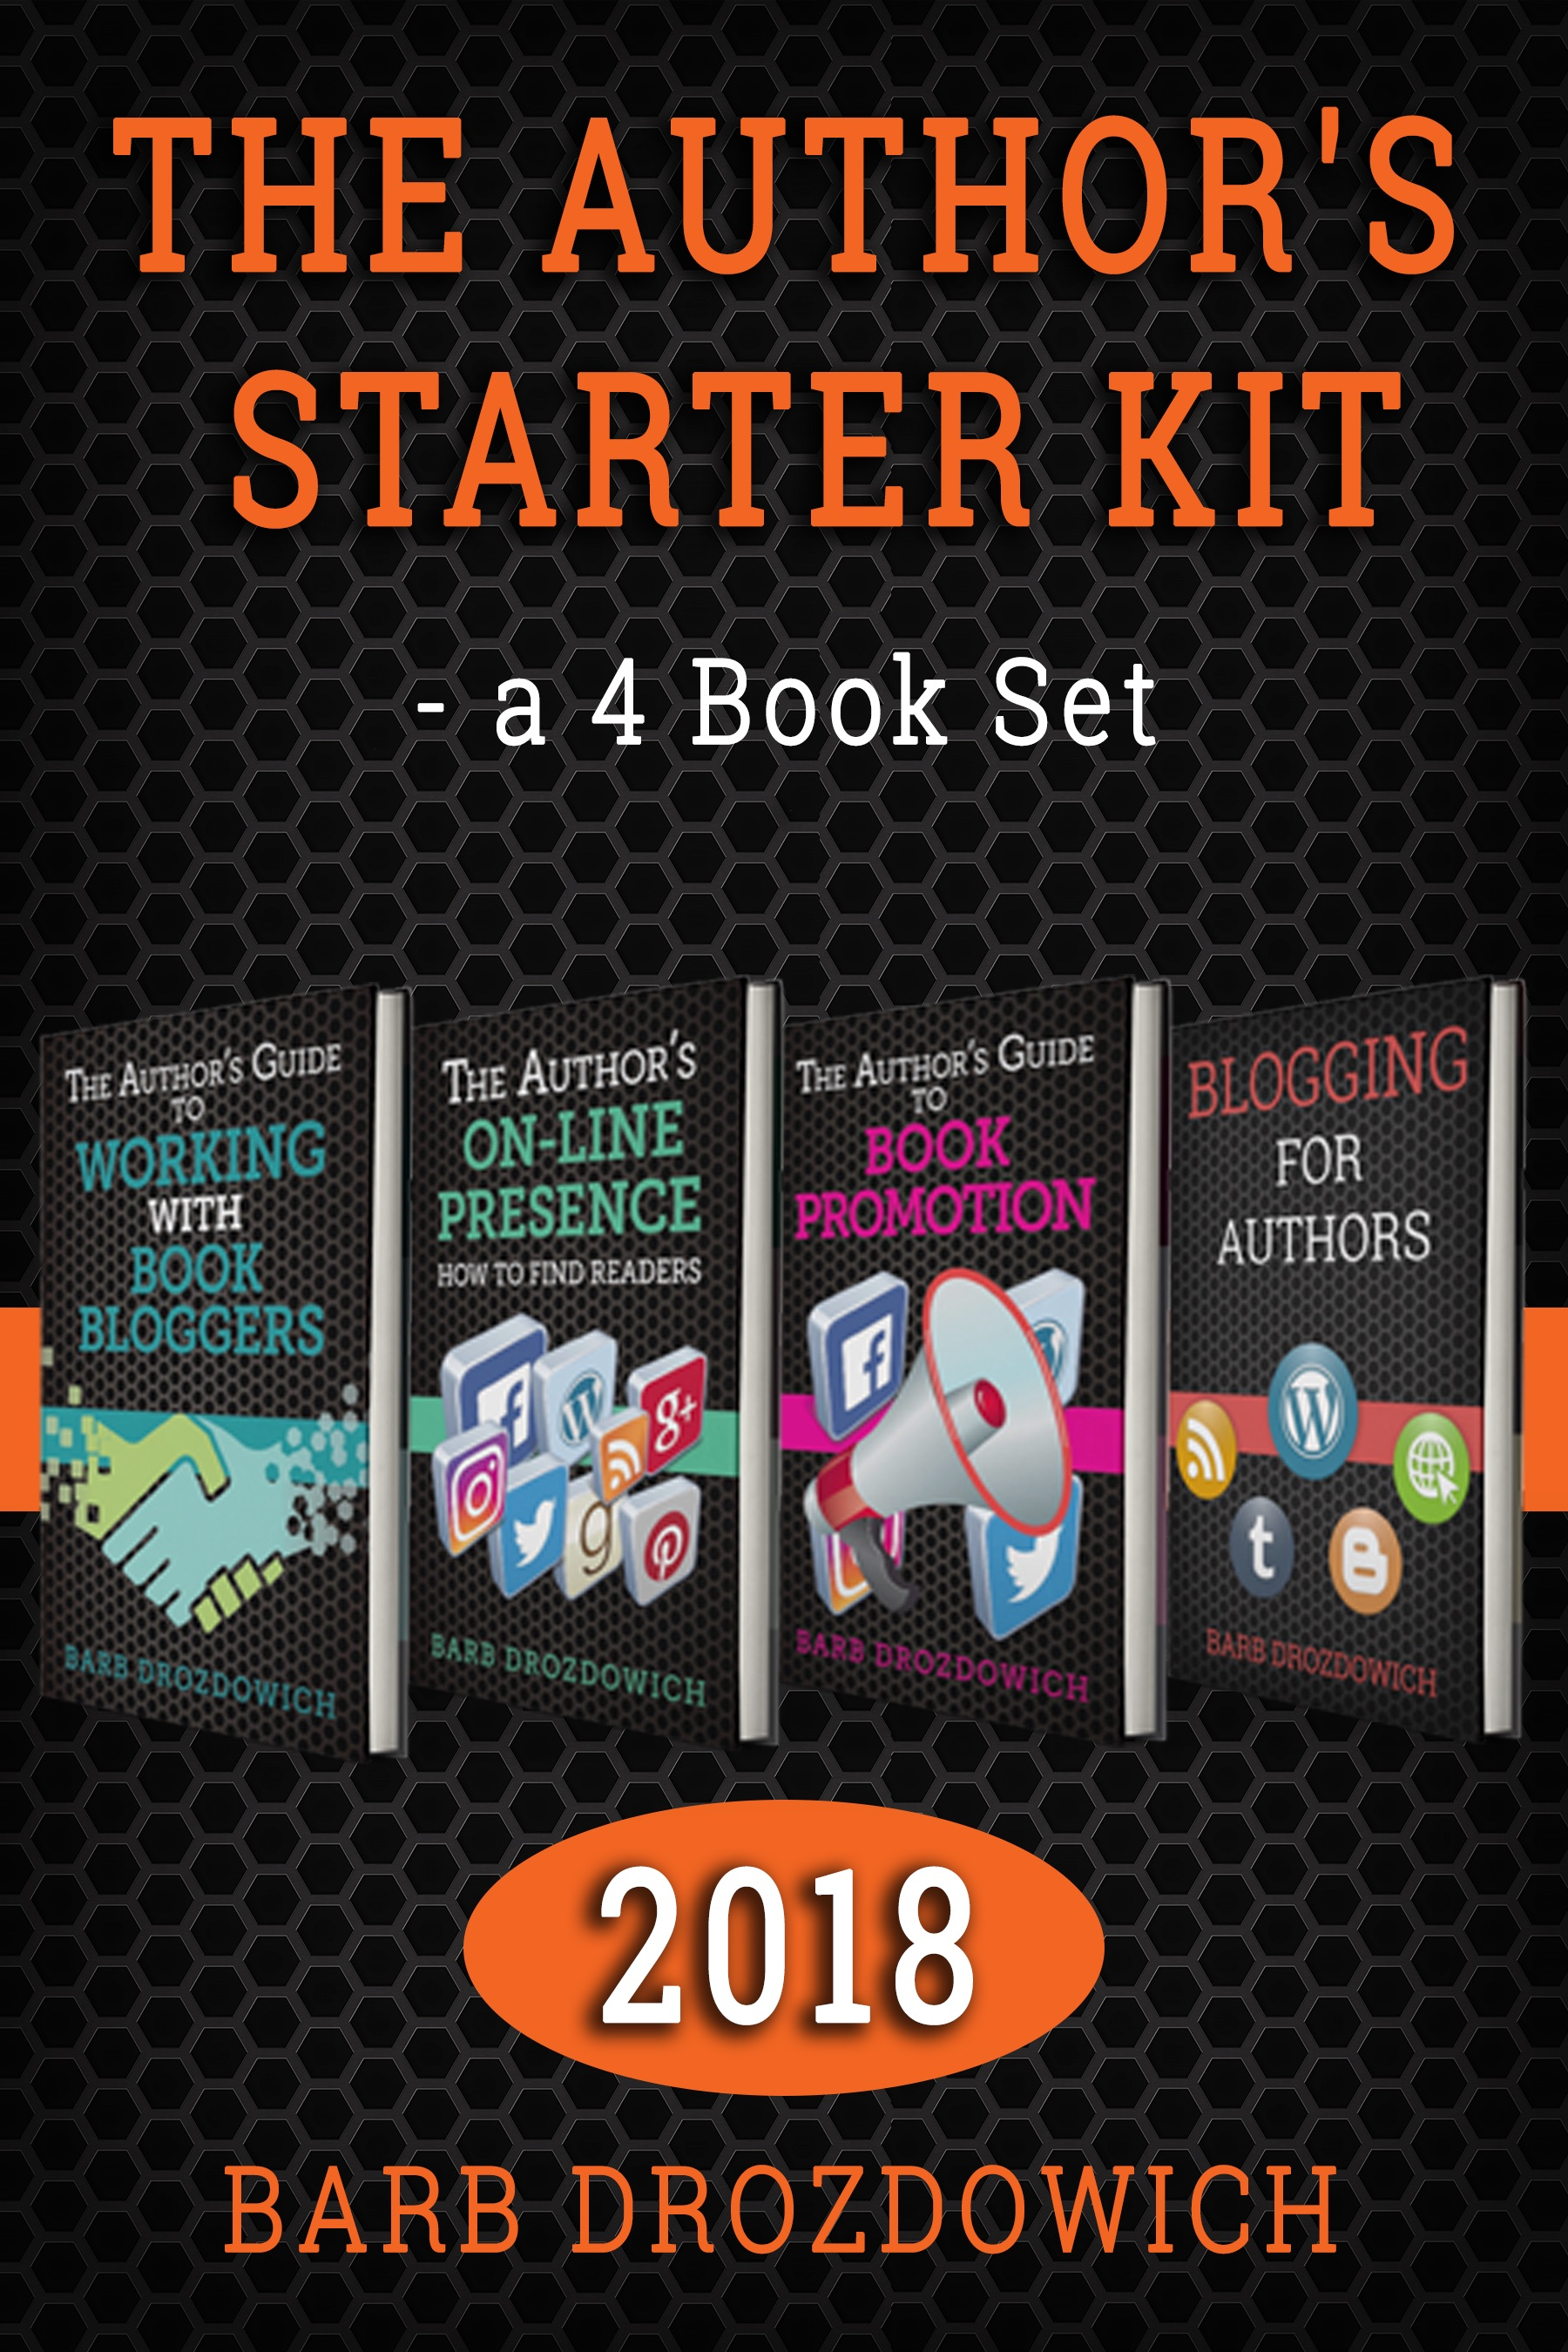 2018 Author Starter Kit